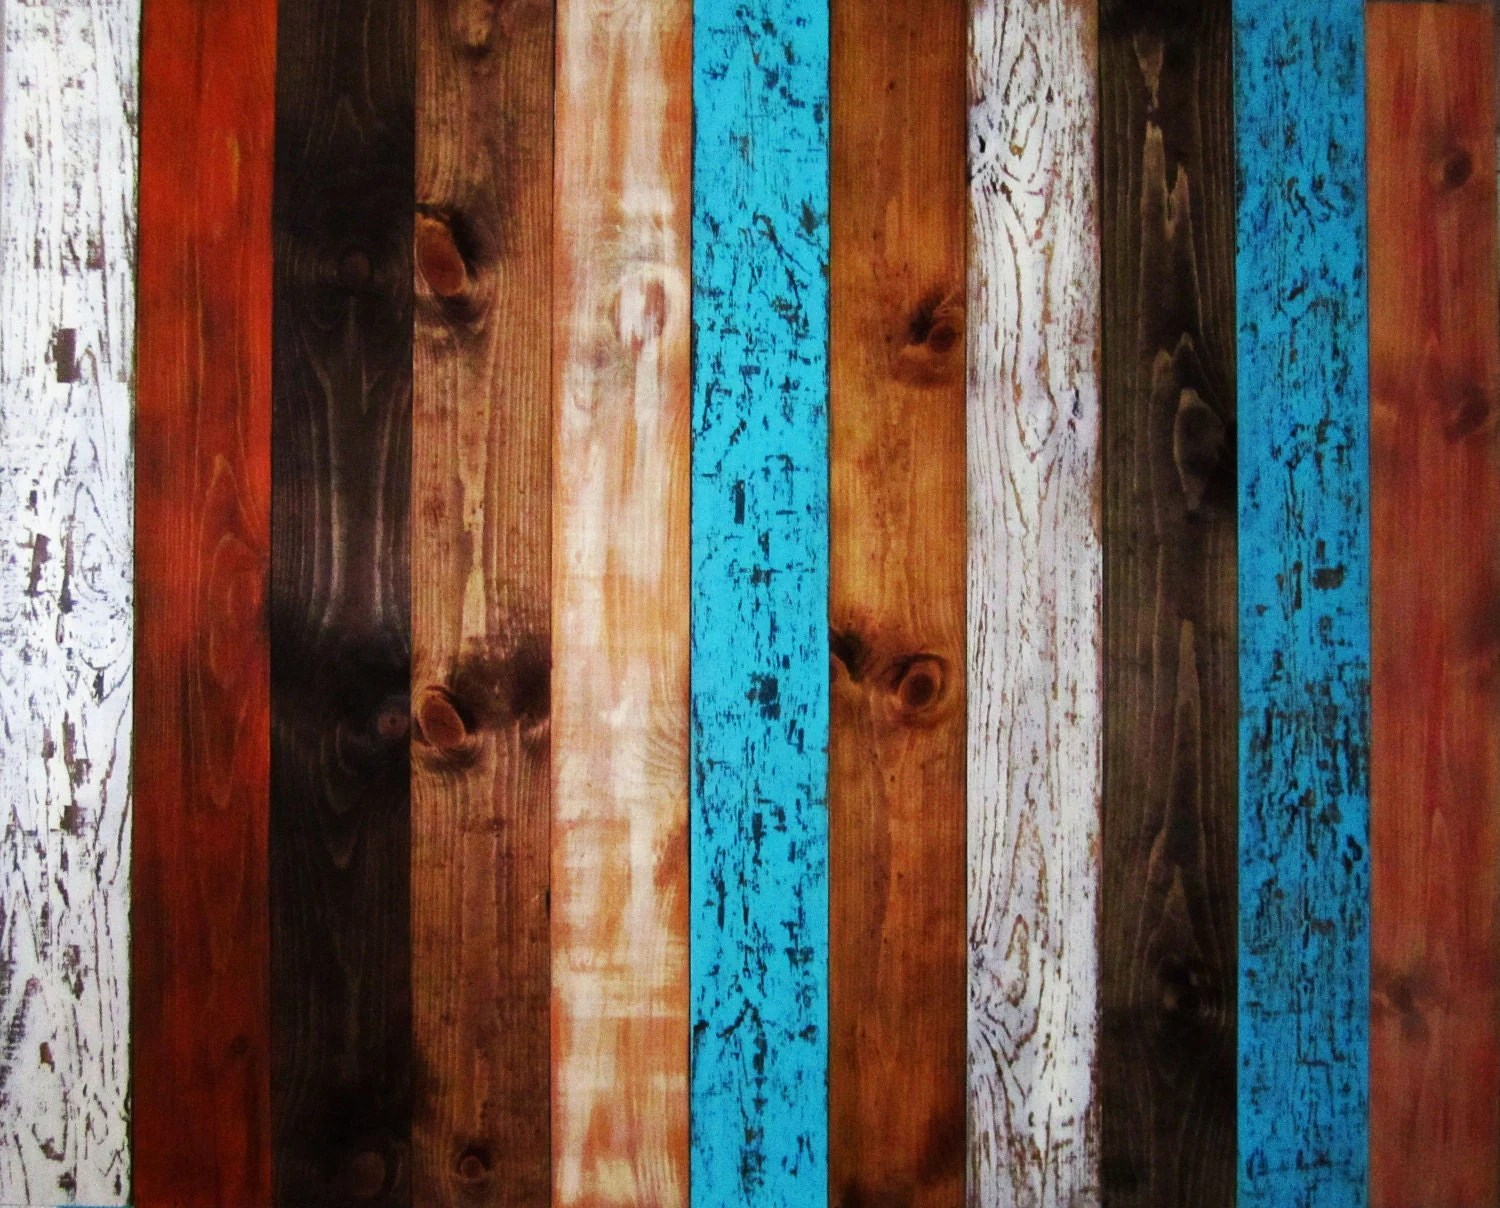 Queen Rustic Headboard Multi Colored With Stained Wood